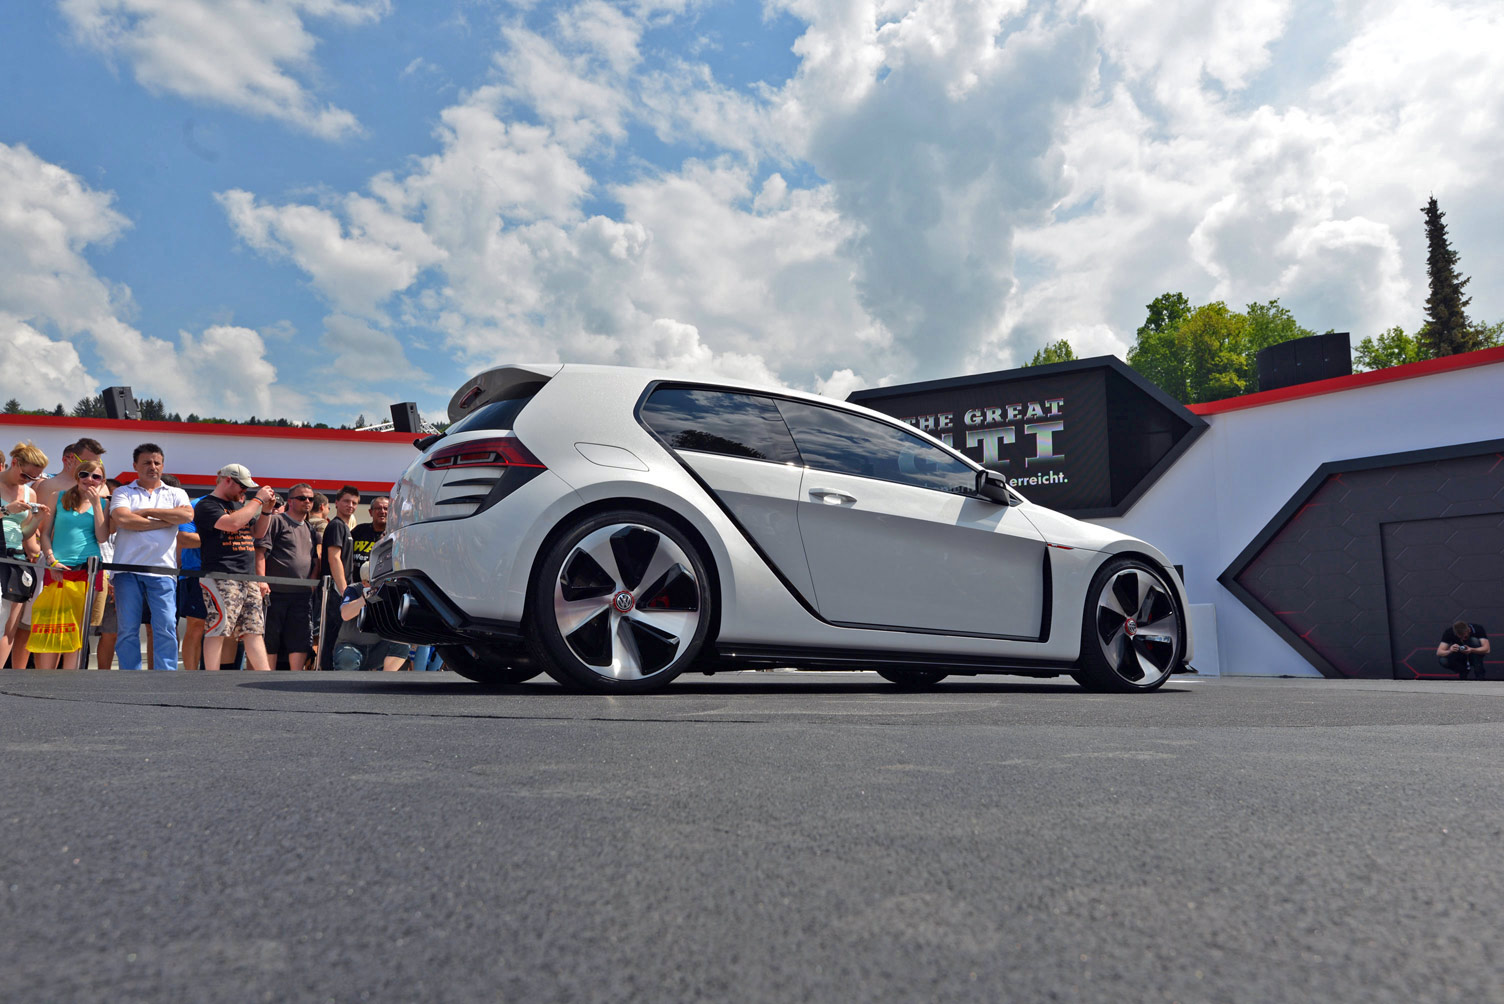 volkswagen-design-vision-gti-worthersee-037